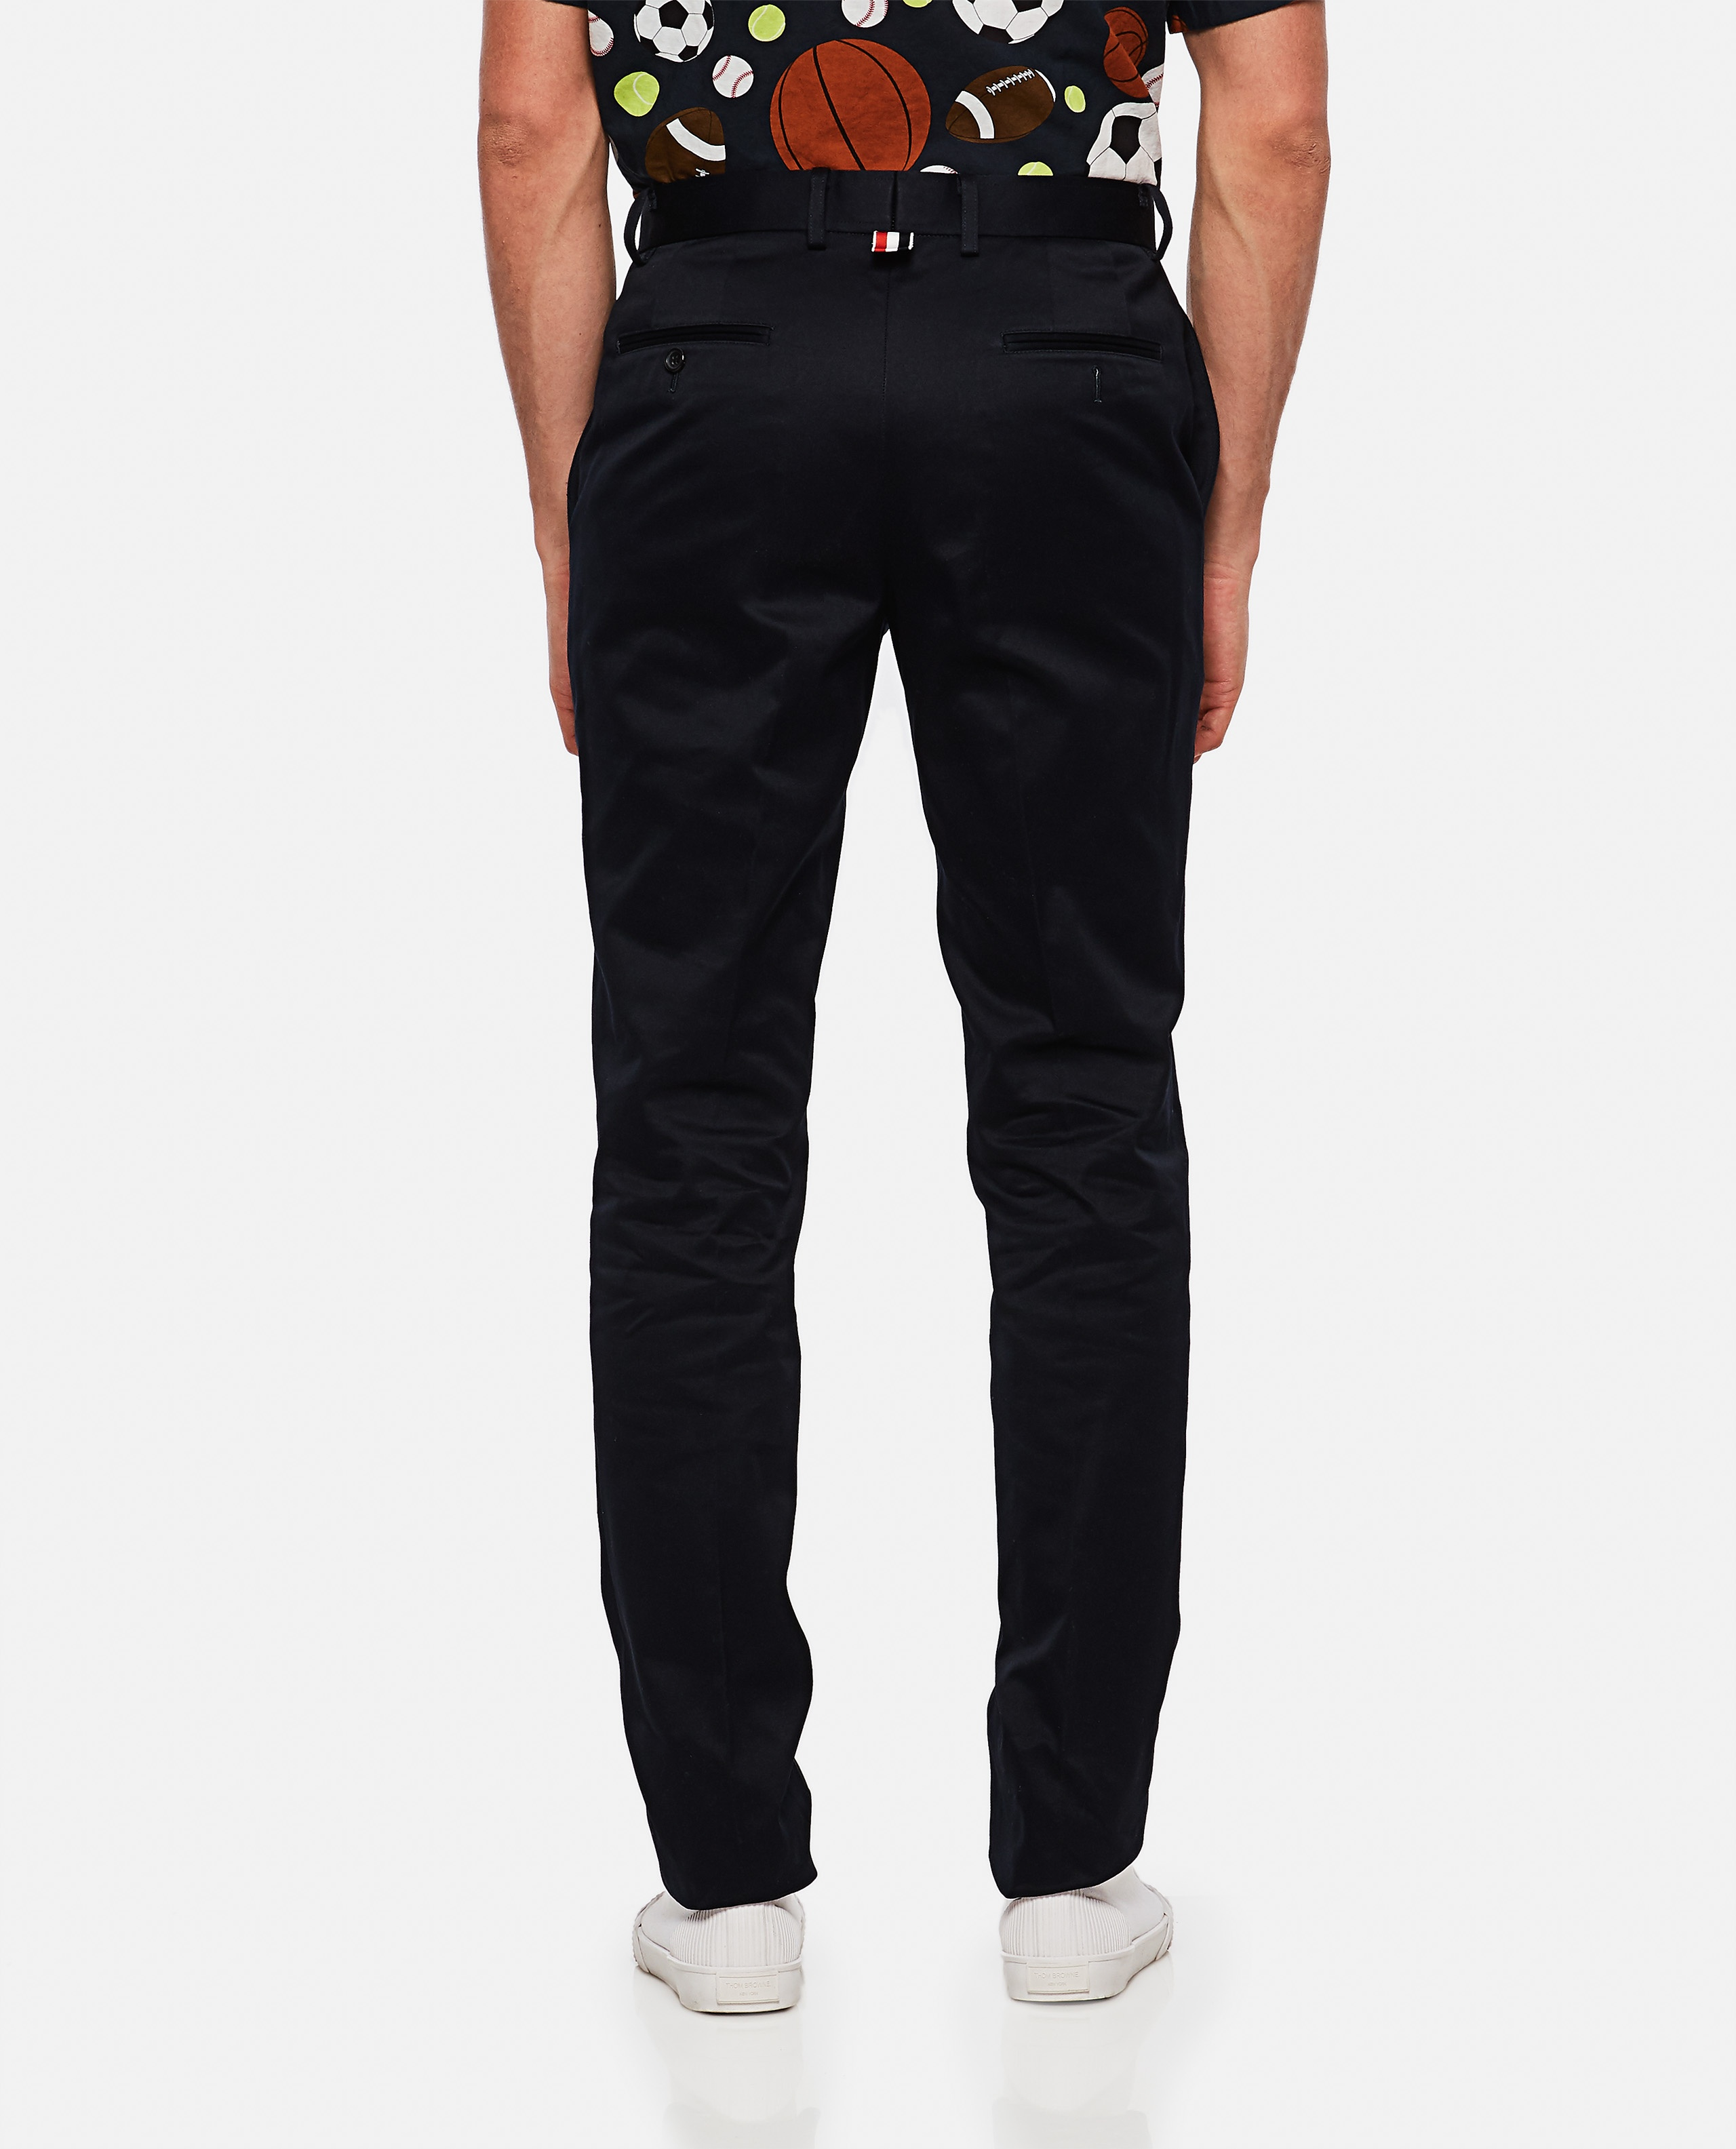 Cotton twill trousers Men Thom Browne 000215830032004 3